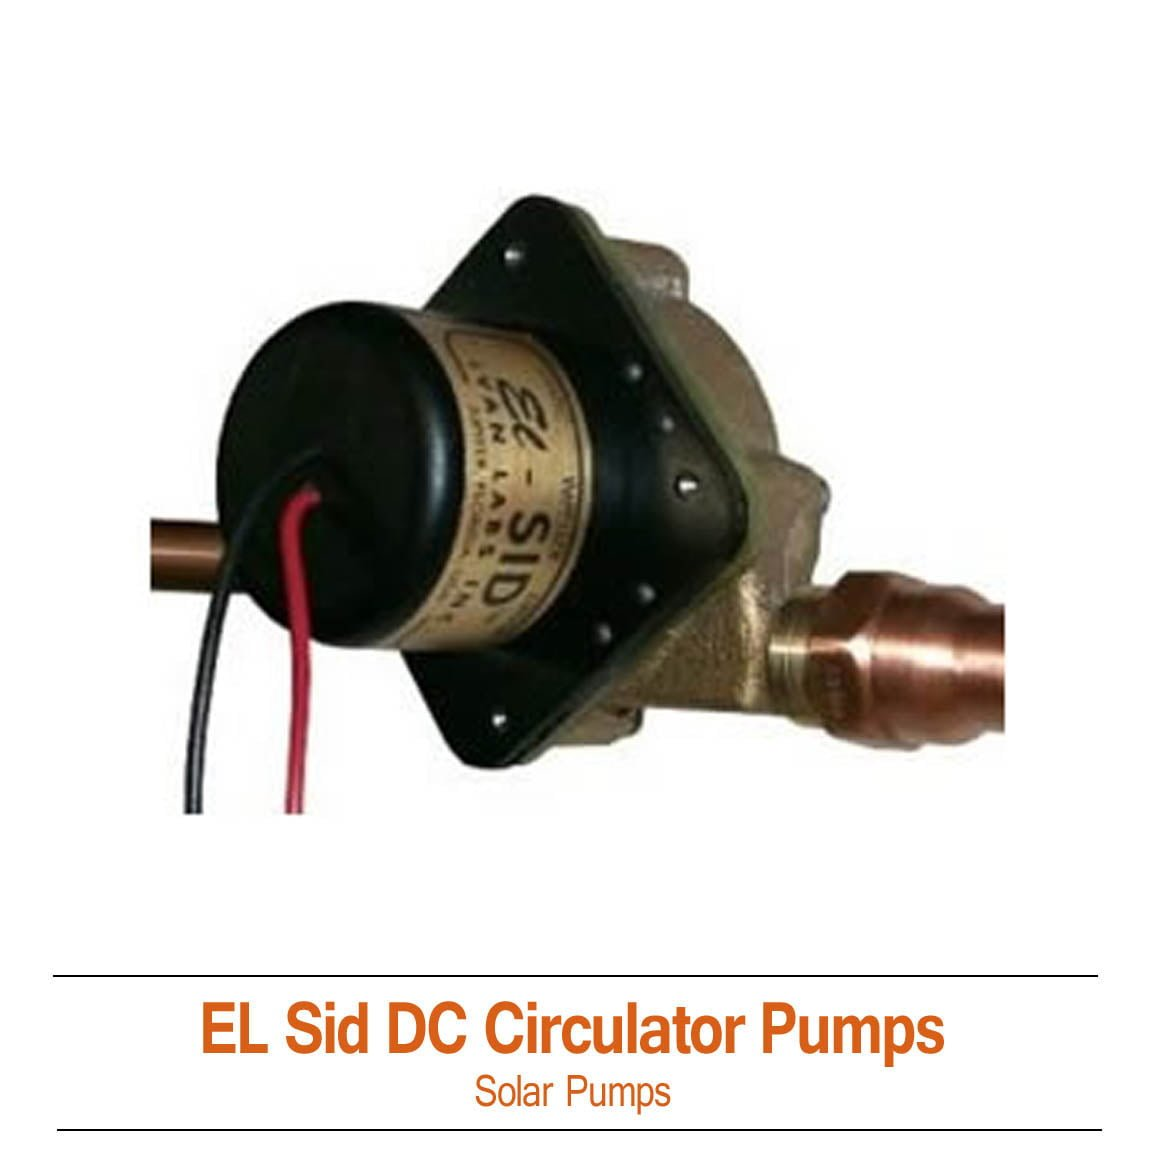 El Sid Solar Circulating Pump